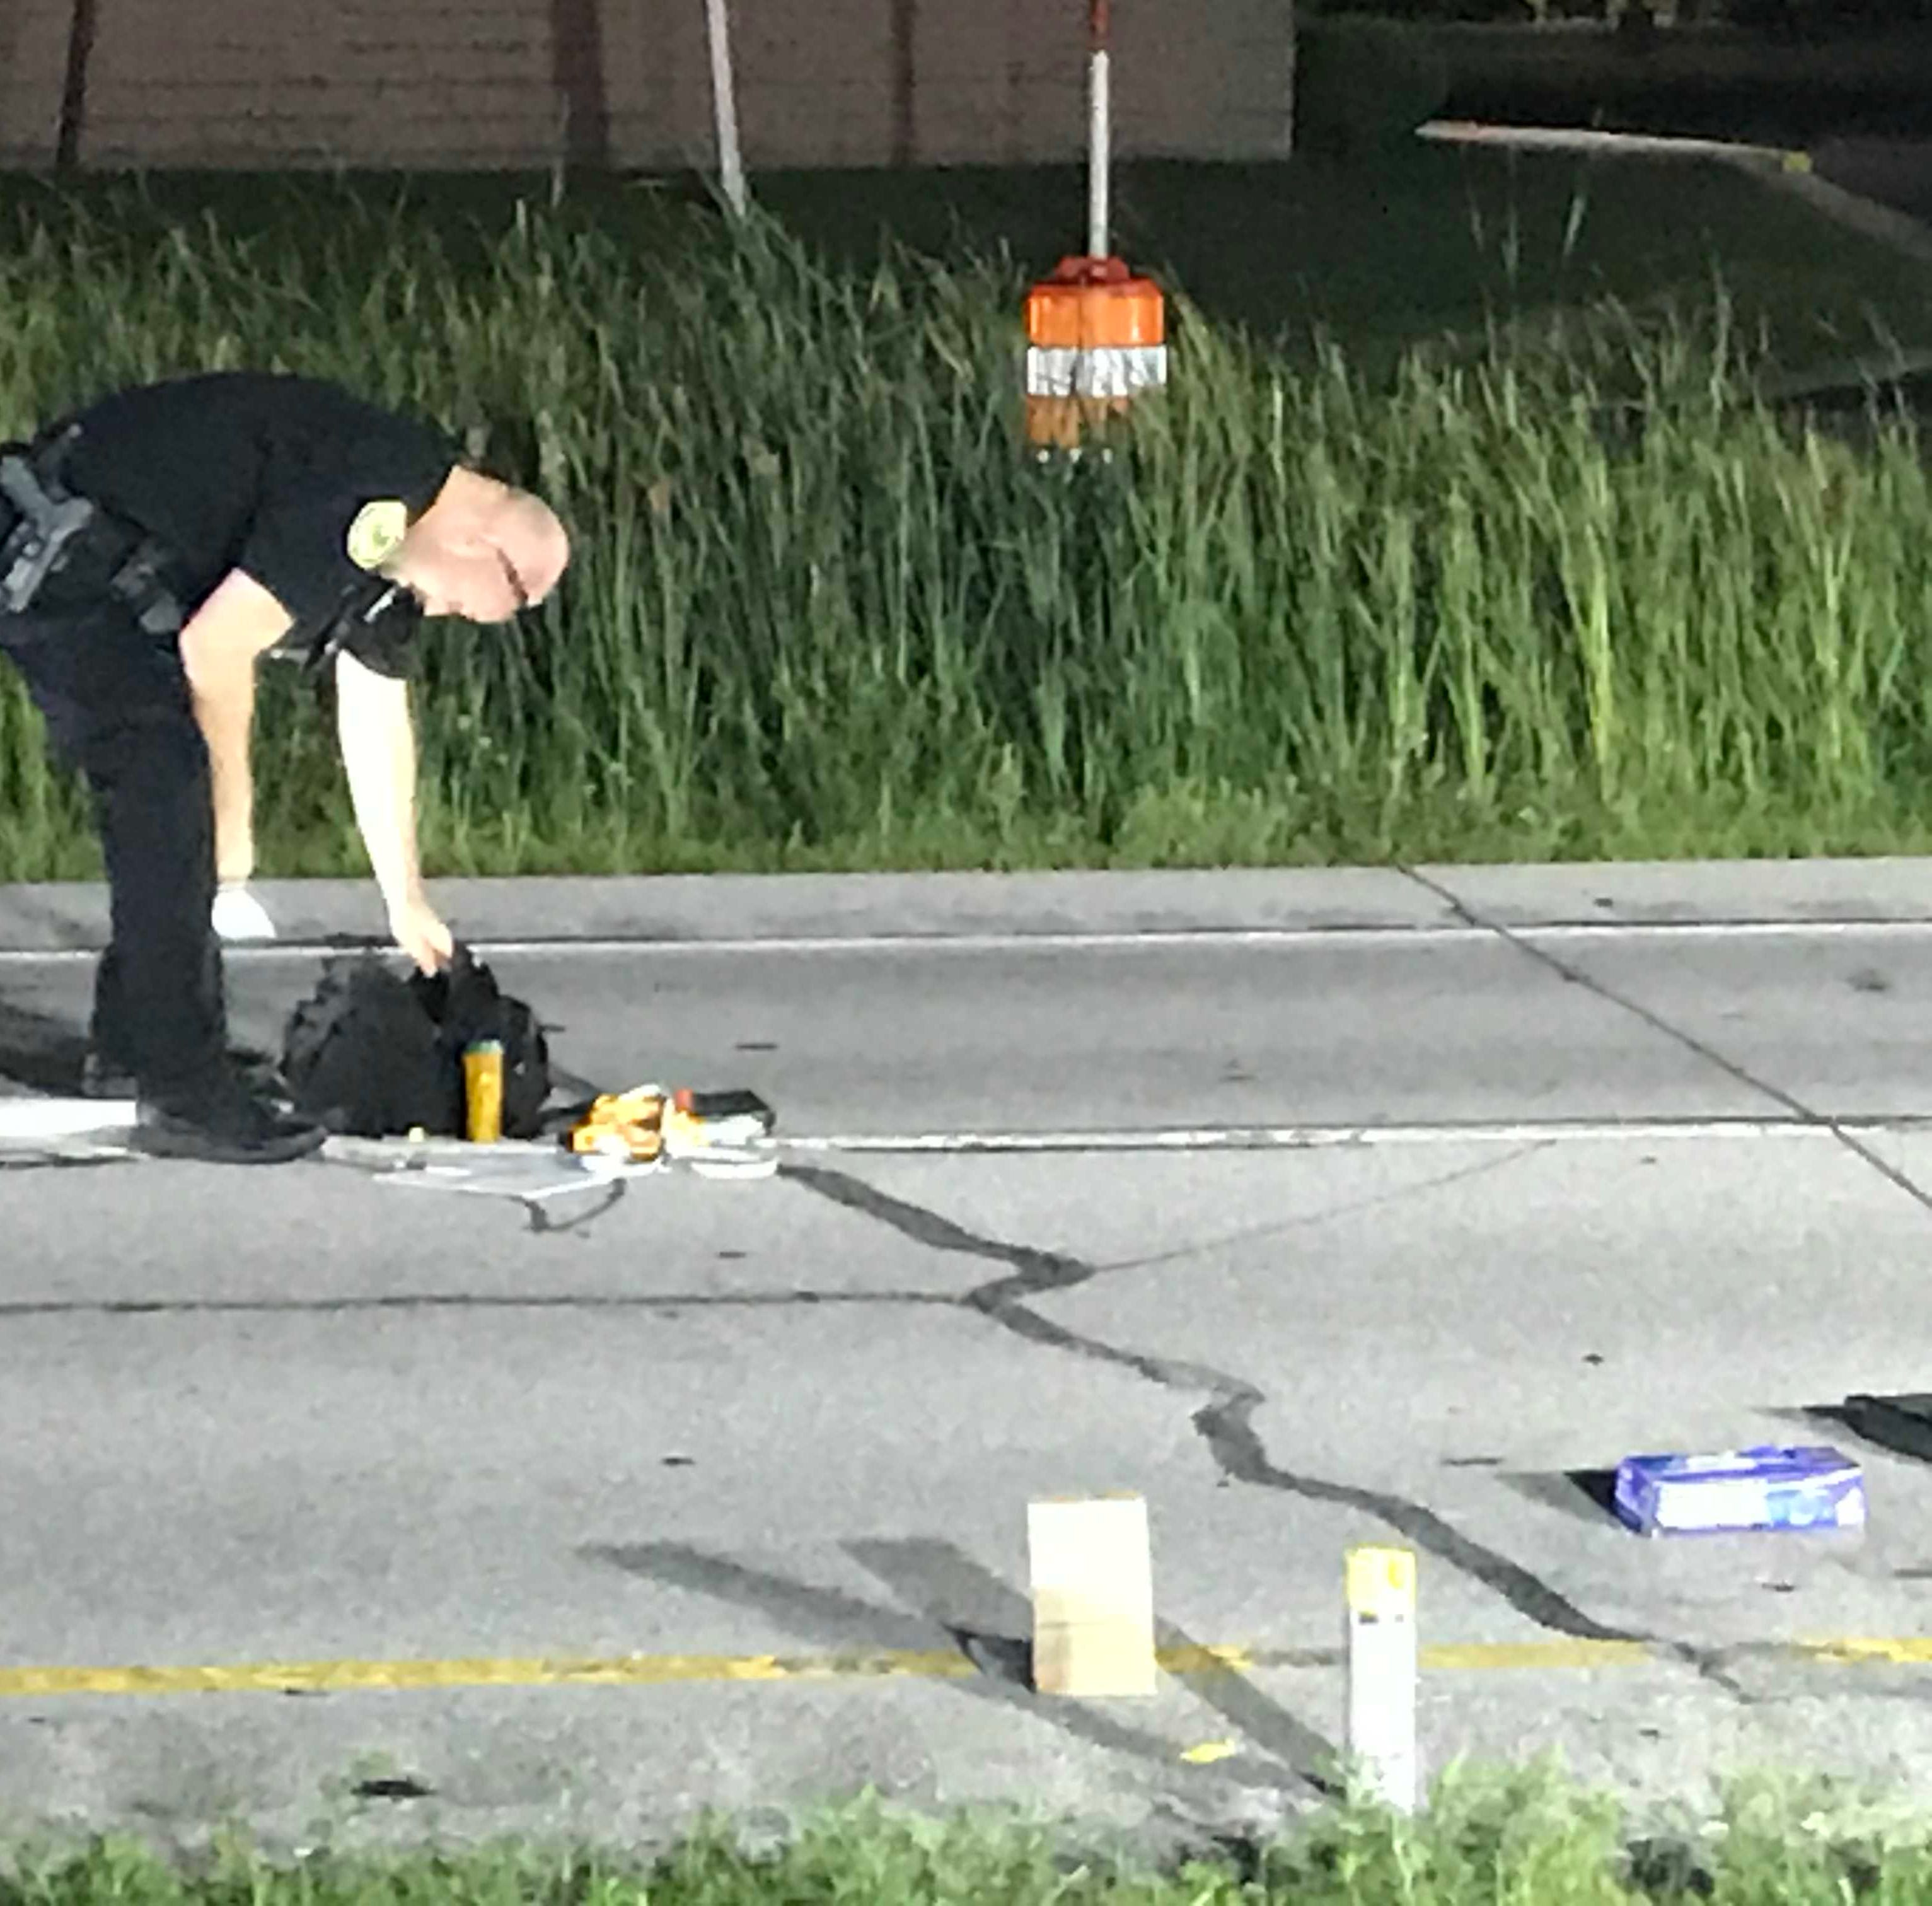 Teen struck, seriously injured by hit-and-run driver on McGalliard